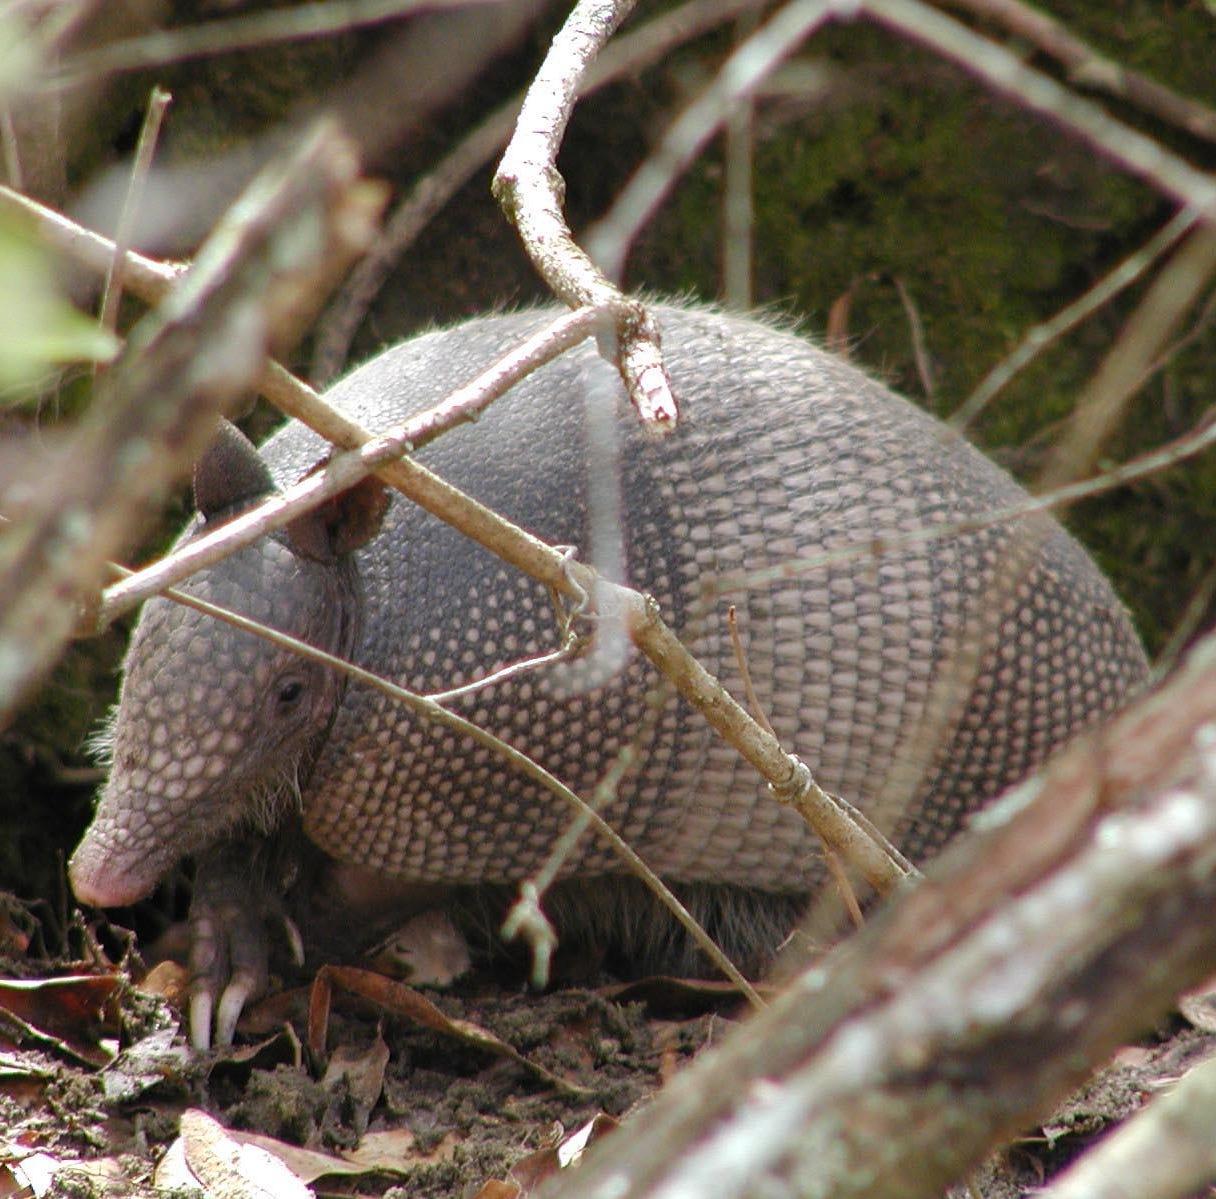 See an armadillo? NC Wildlife biologists want to know